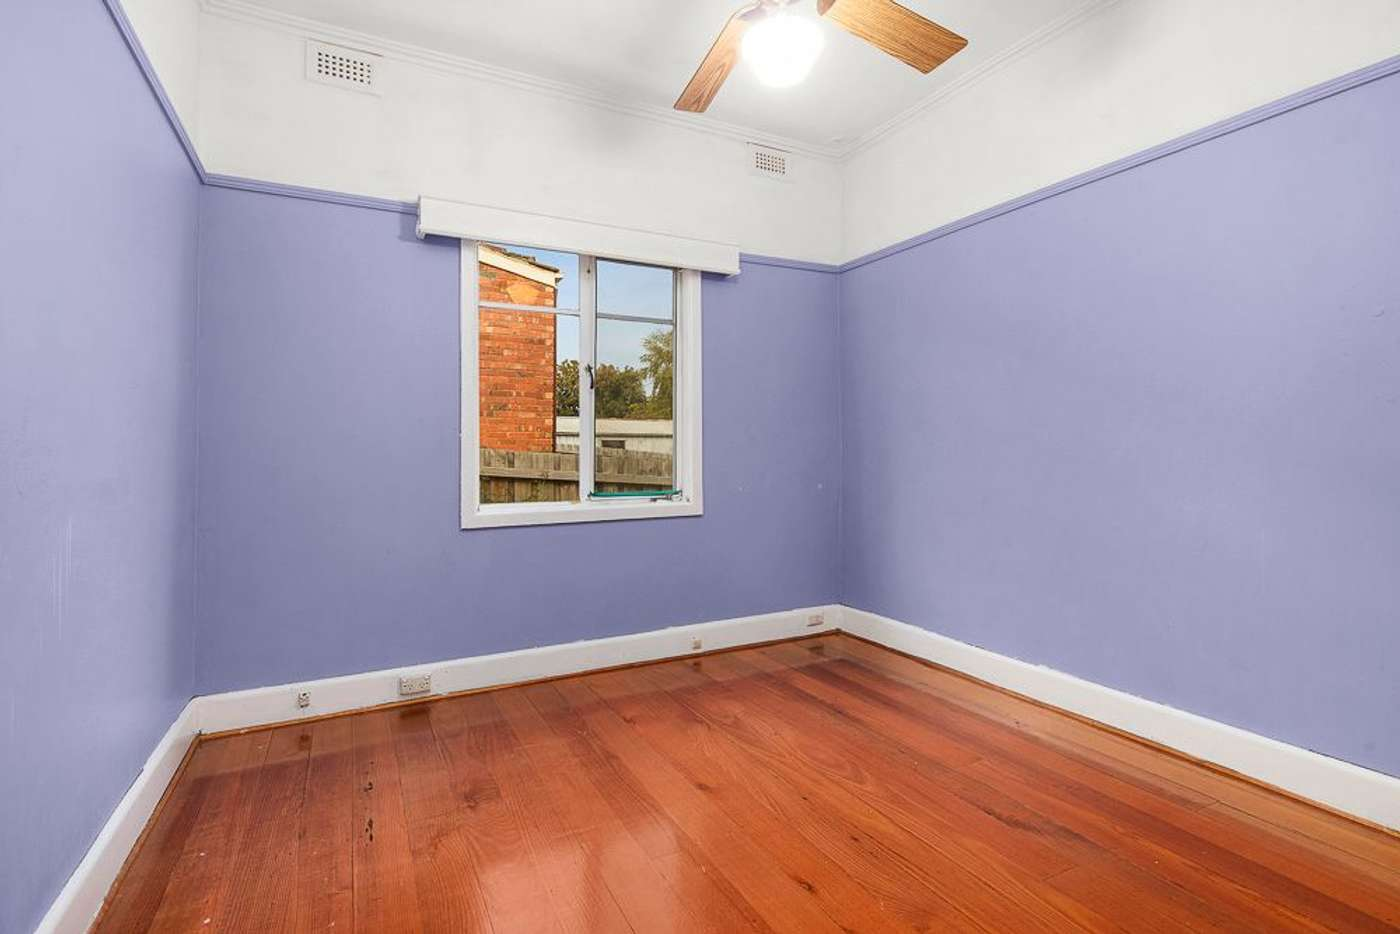 Sixth view of Homely house listing, 76 Coonans Road, Pascoe Vale South VIC 3044